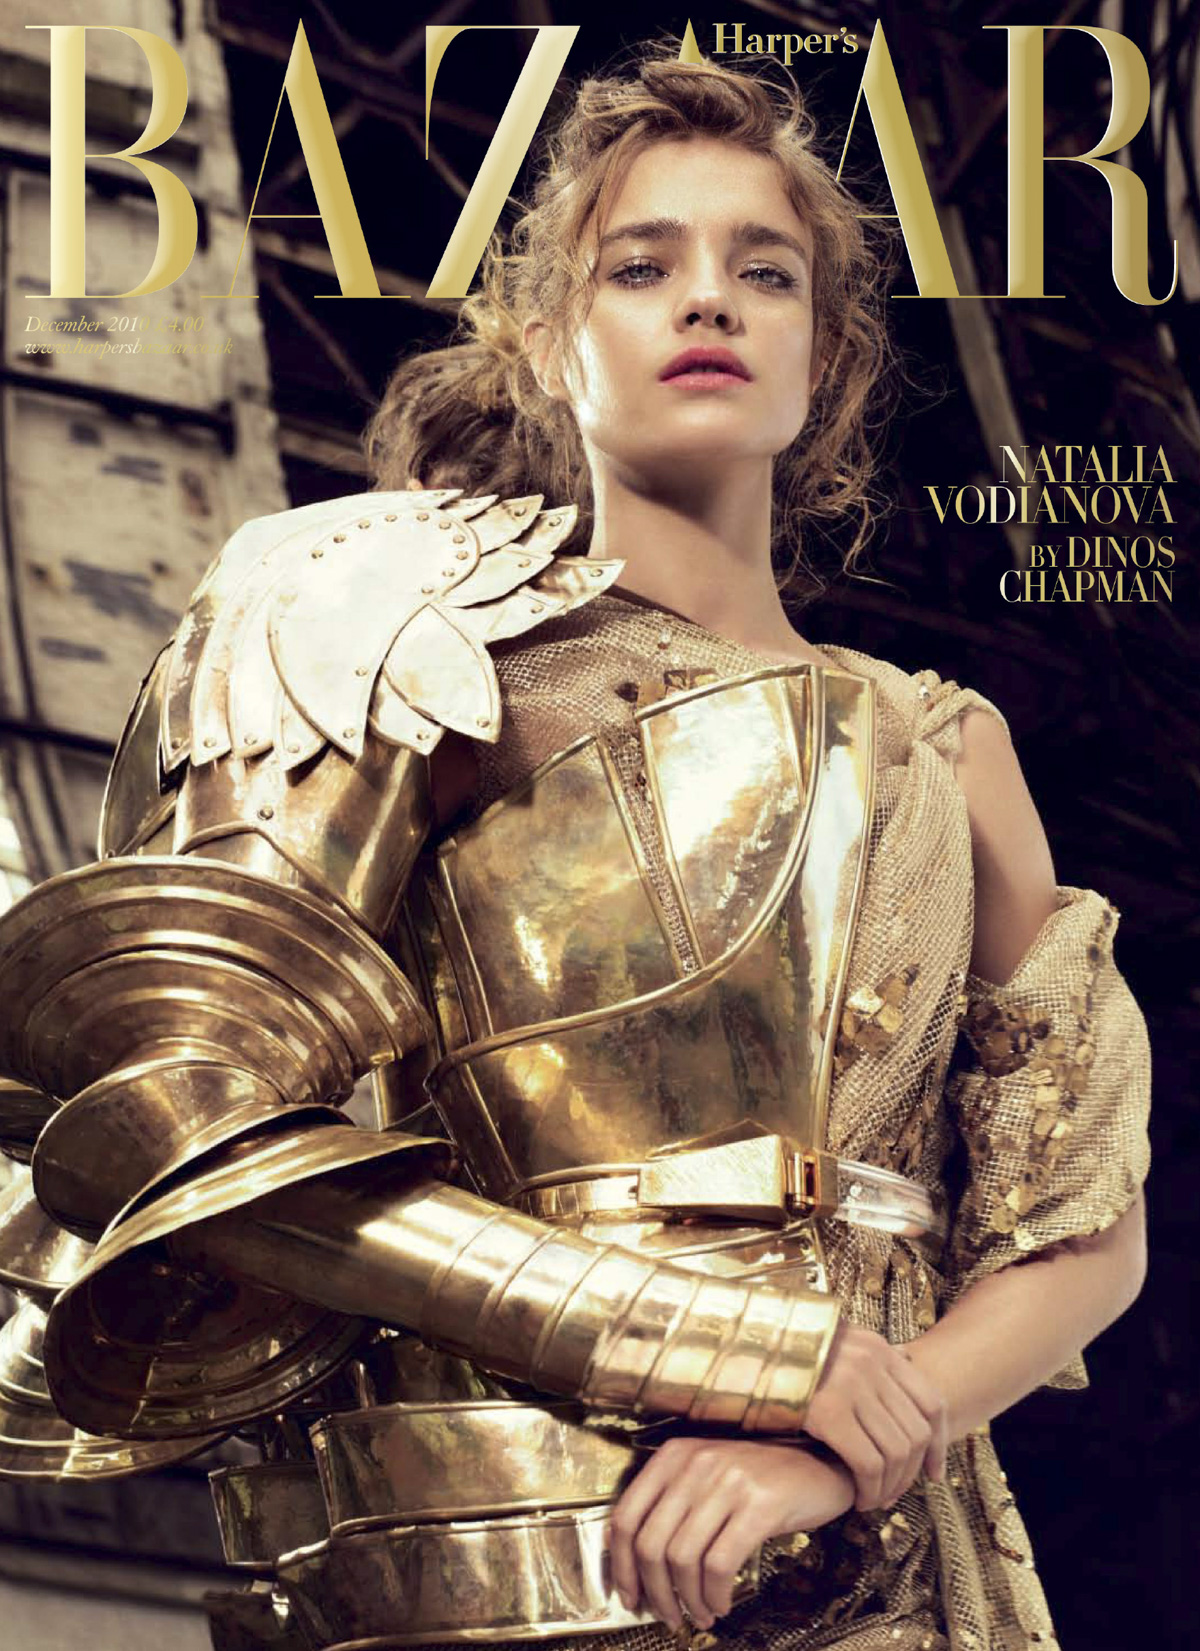 house-of-usher-harpers-bazaar-magazine-12